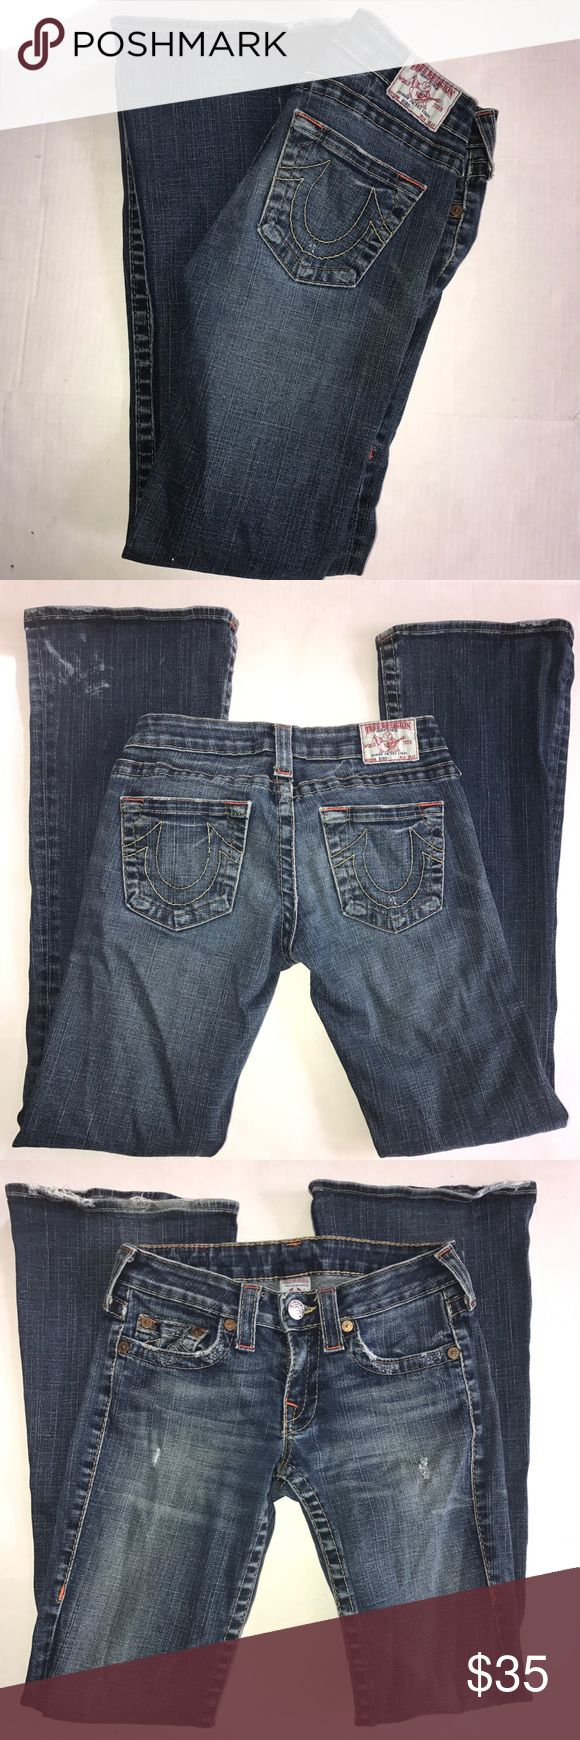 """Authentic True Religion 28"""" women's bootcut jeans Authentic True Religion bootcut denim blue jeans. Women's size 28"""". Inseam is 31"""". Distressed denim, with horseshoe embroidered pockets. In very good condition, there is a white mark at bottom of back of Jean cuff, and some Norma wear on very bottom hem. Clean and comes from smoke and pet free  home. True Religion Jeans Boot Cut"""